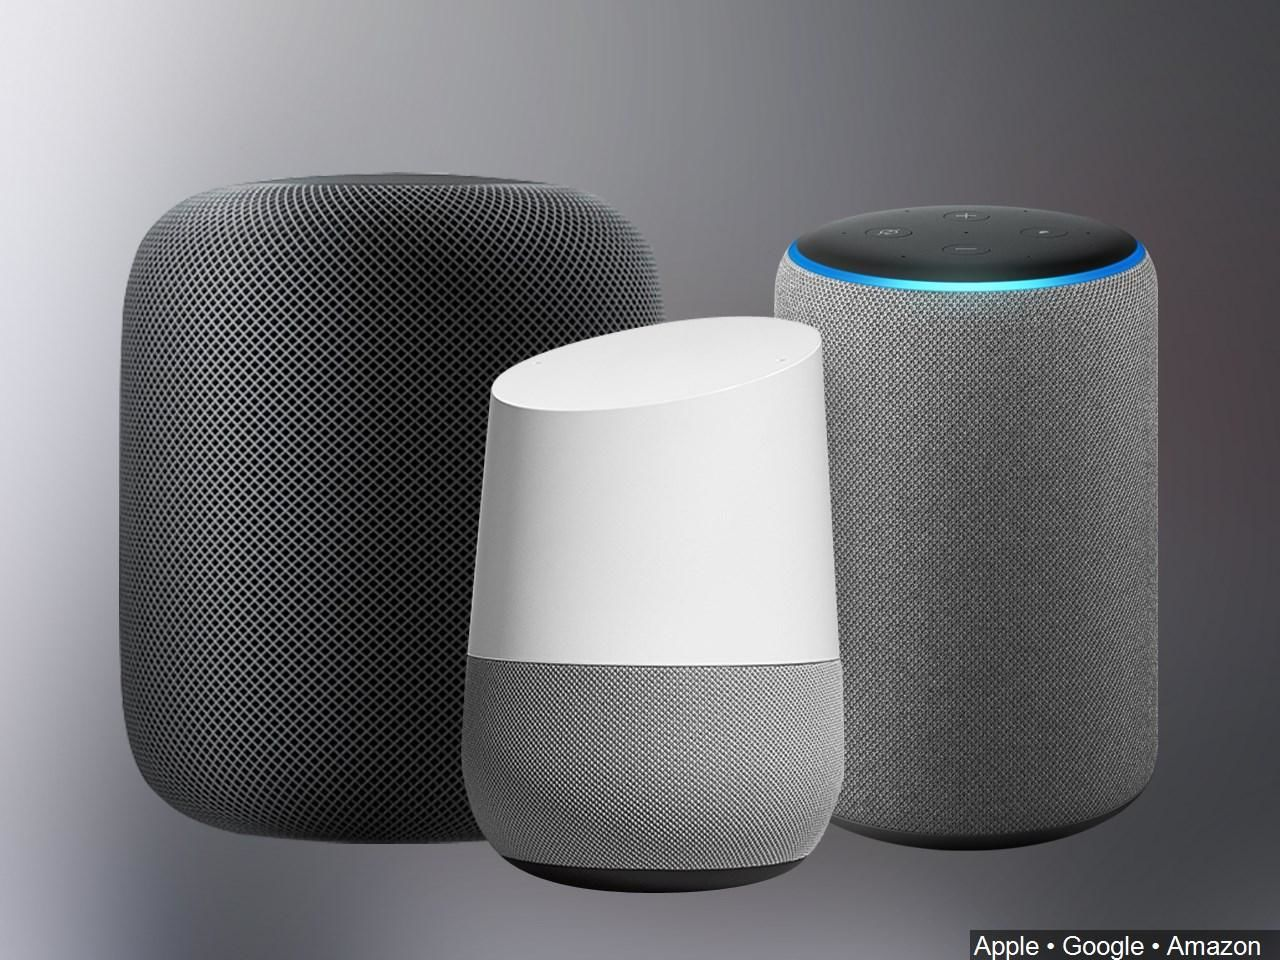 Amazon, Apple, Facebook, Google and Microsoft have been caught using human beings to listen in on users' voice commands. The companies say their efforts were aimed at training their artificial intelligence systems and improving the accuracy of voice recognition. (Image: Amazon, Google, Apple via MGN)